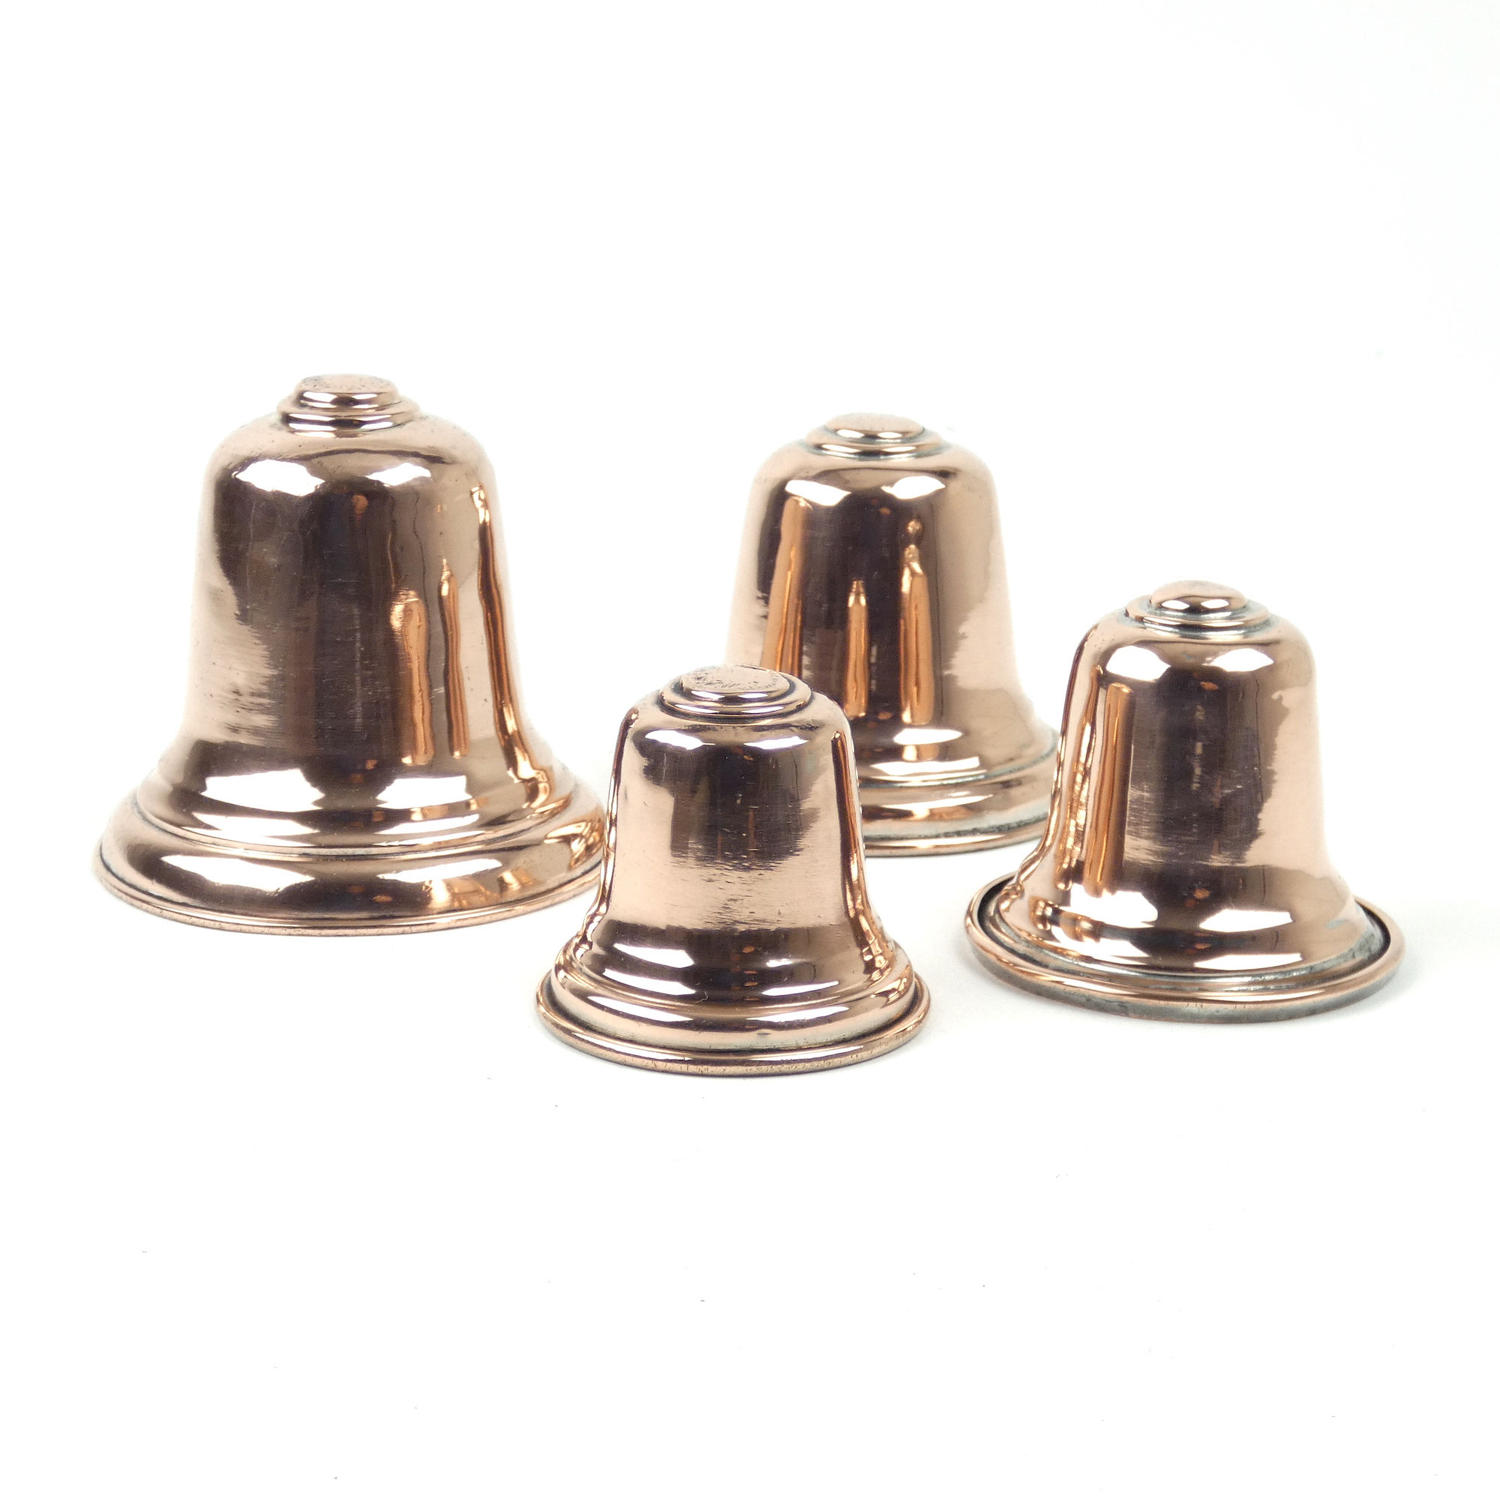 Graduated set of antique copper bell moulds.